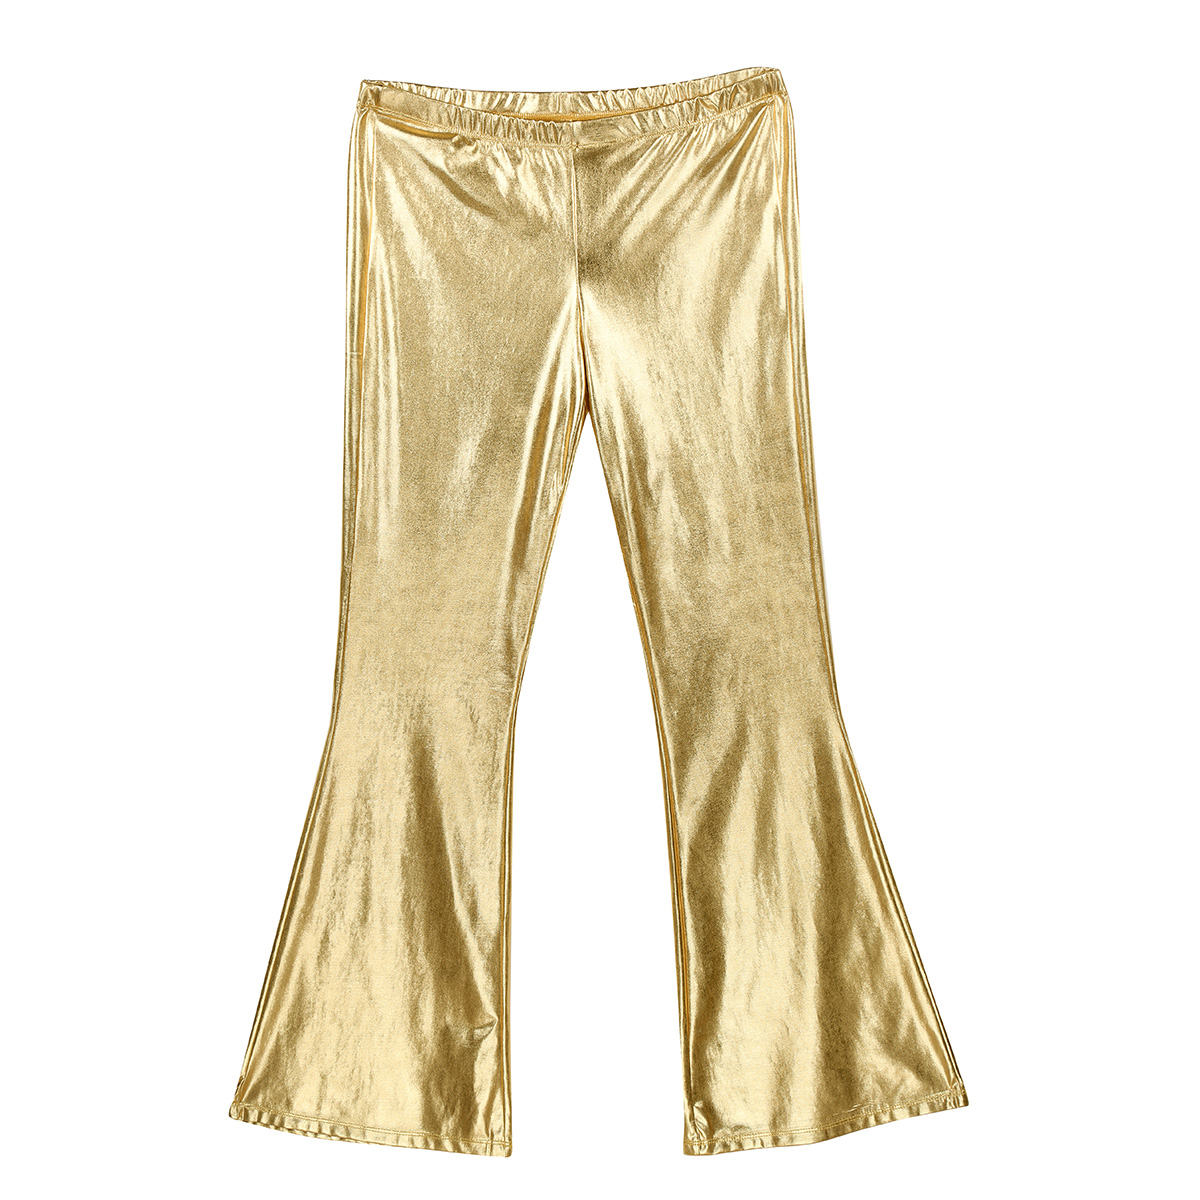 ChicTry Adults Mens Shiny Metallic Disco Pants with Bell Bottom Flared Long Pants Dude Costume Trousers for 70's Theme Parties 42